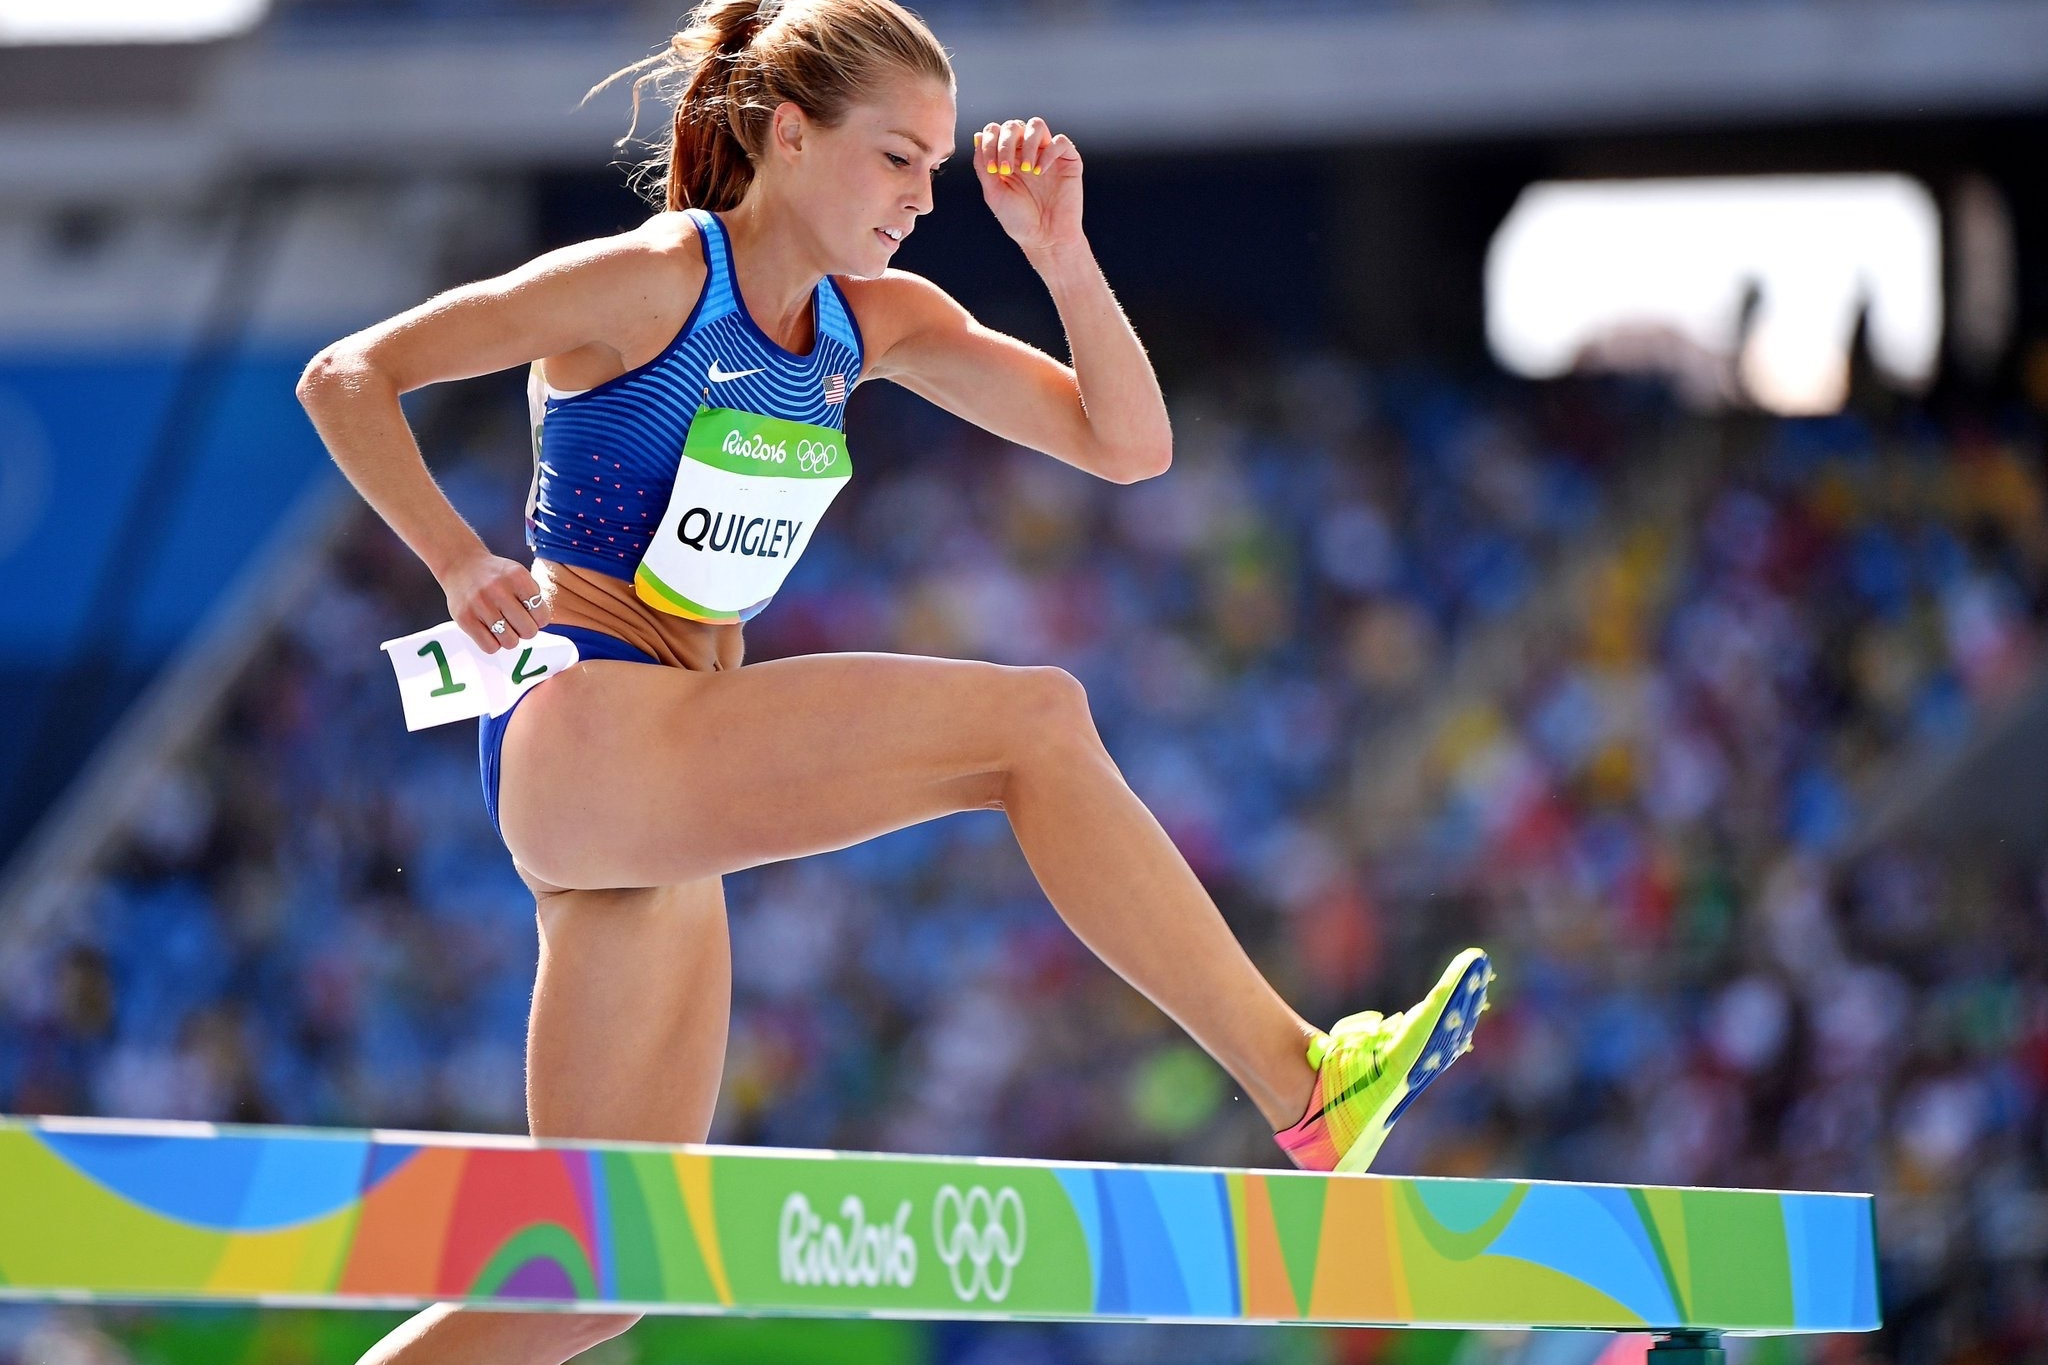 2016 Olympic Games - 3k Steeplechase